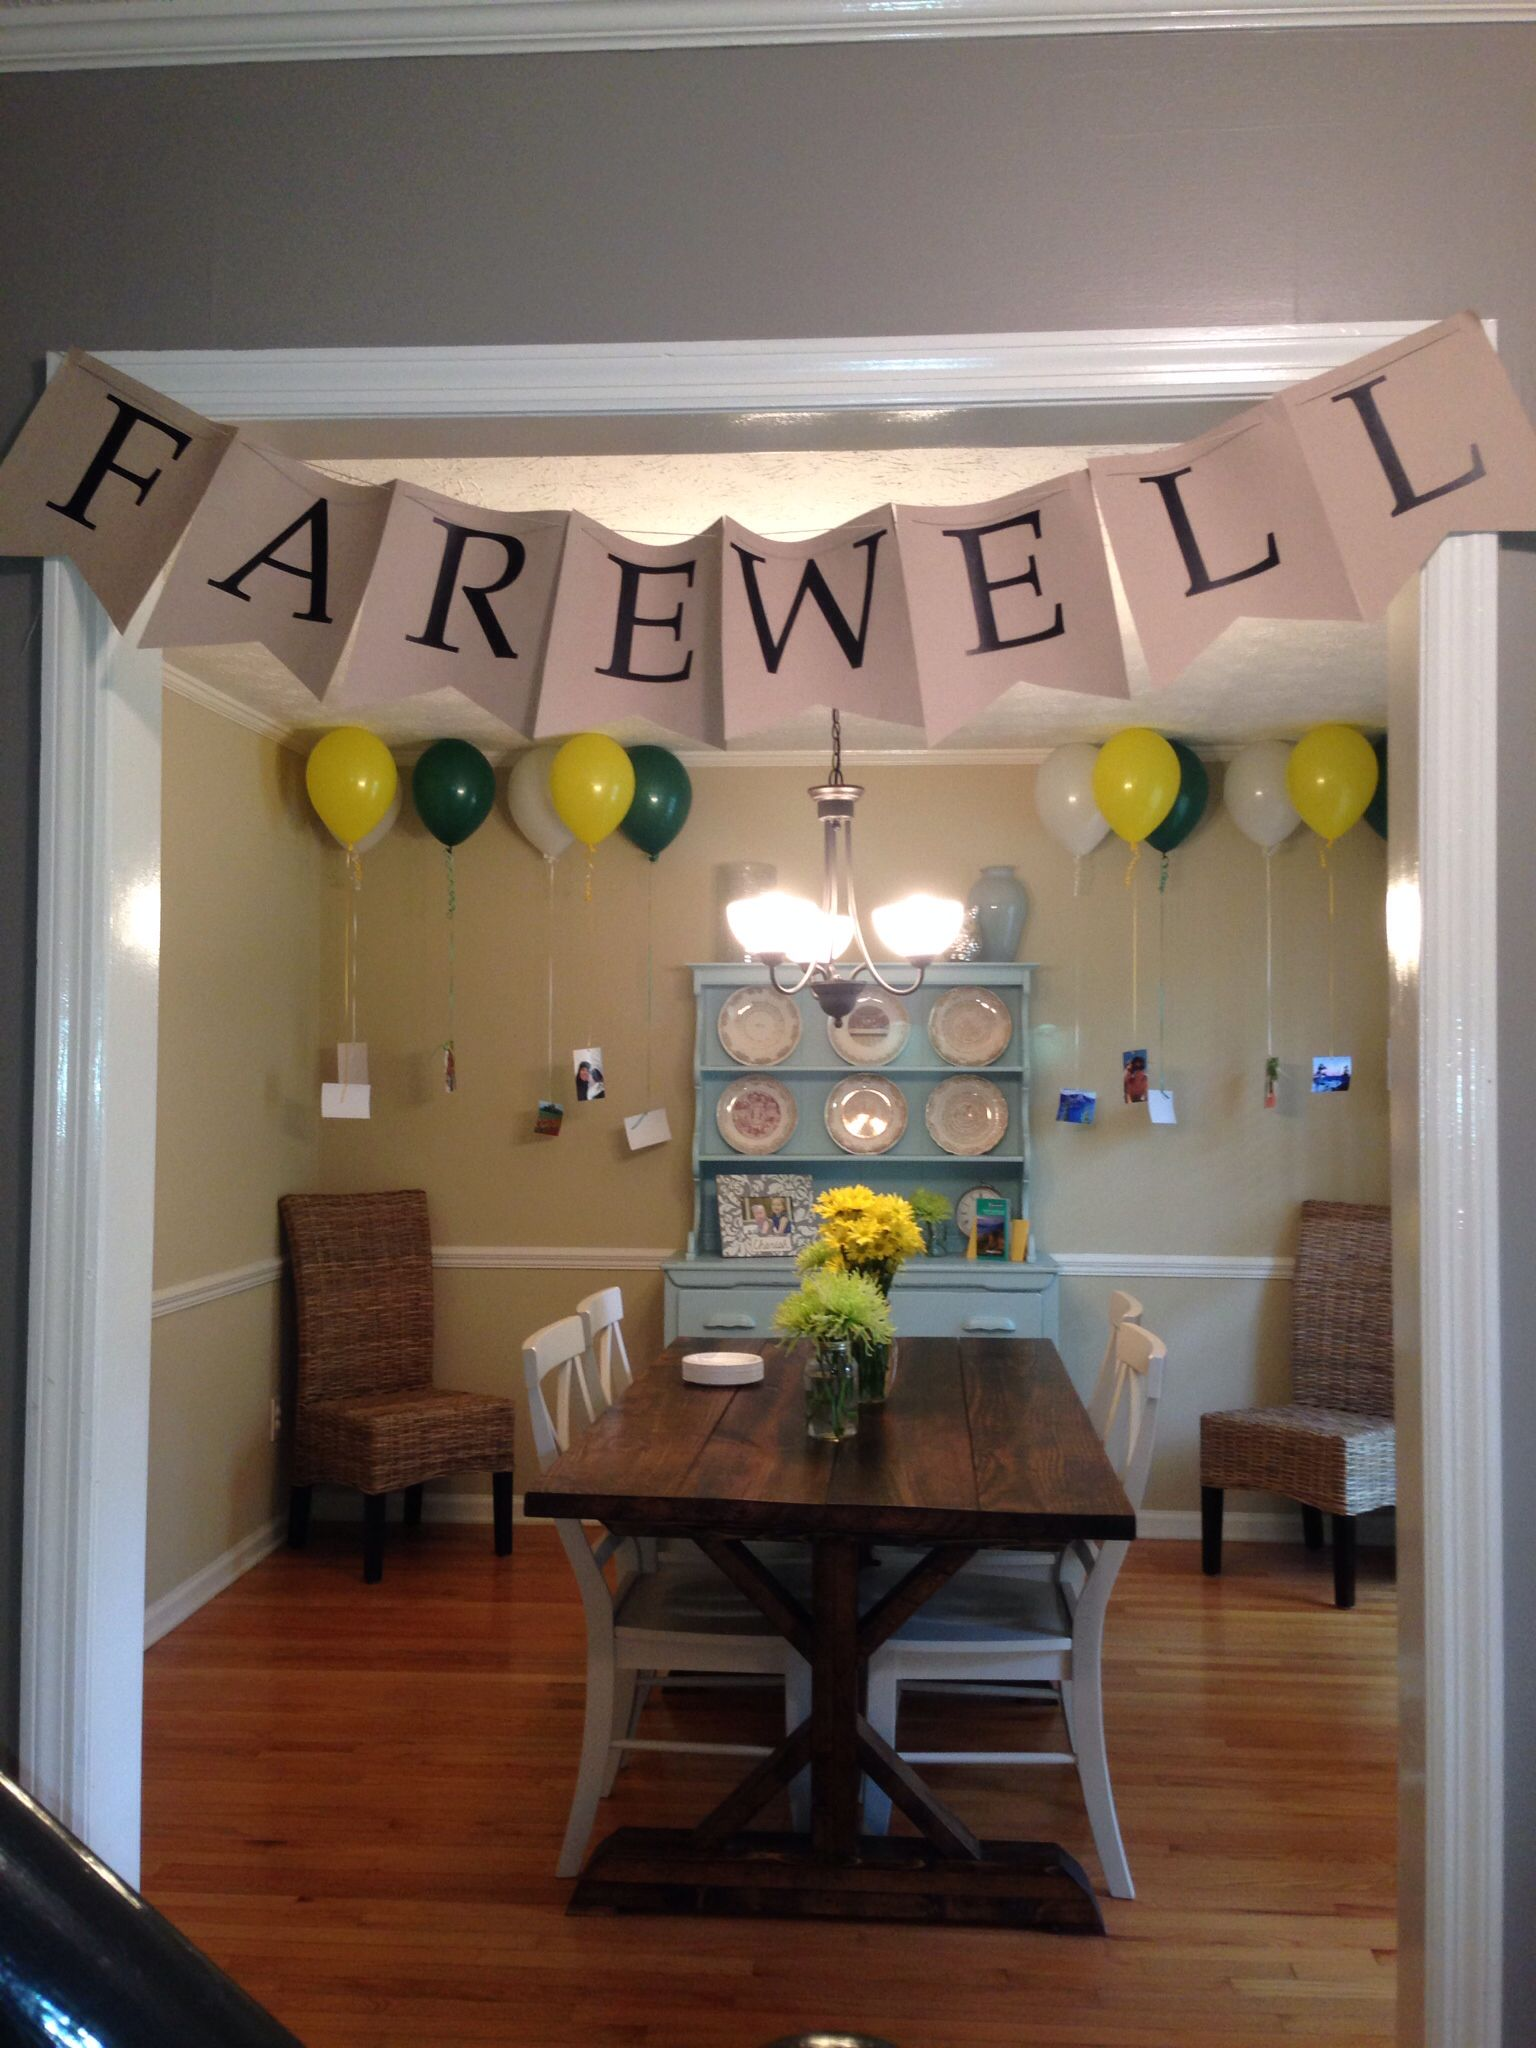 Farewell banner | Banners/ Pendants and Garlands ...